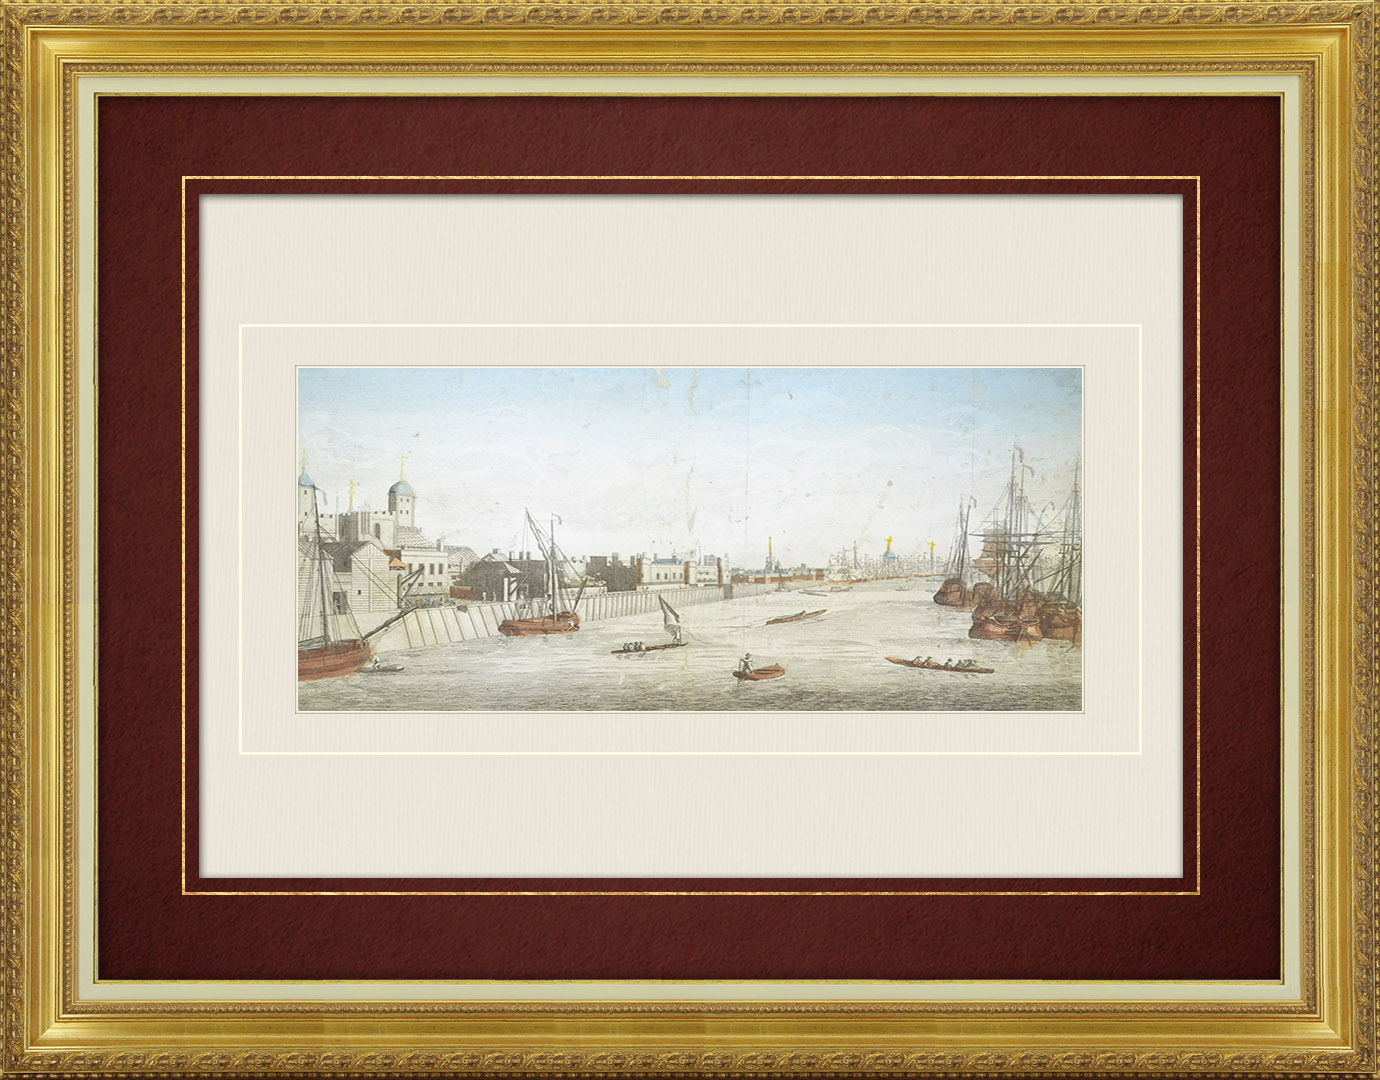 18th Century optical view in original watercolors of the River Thames in London (England)